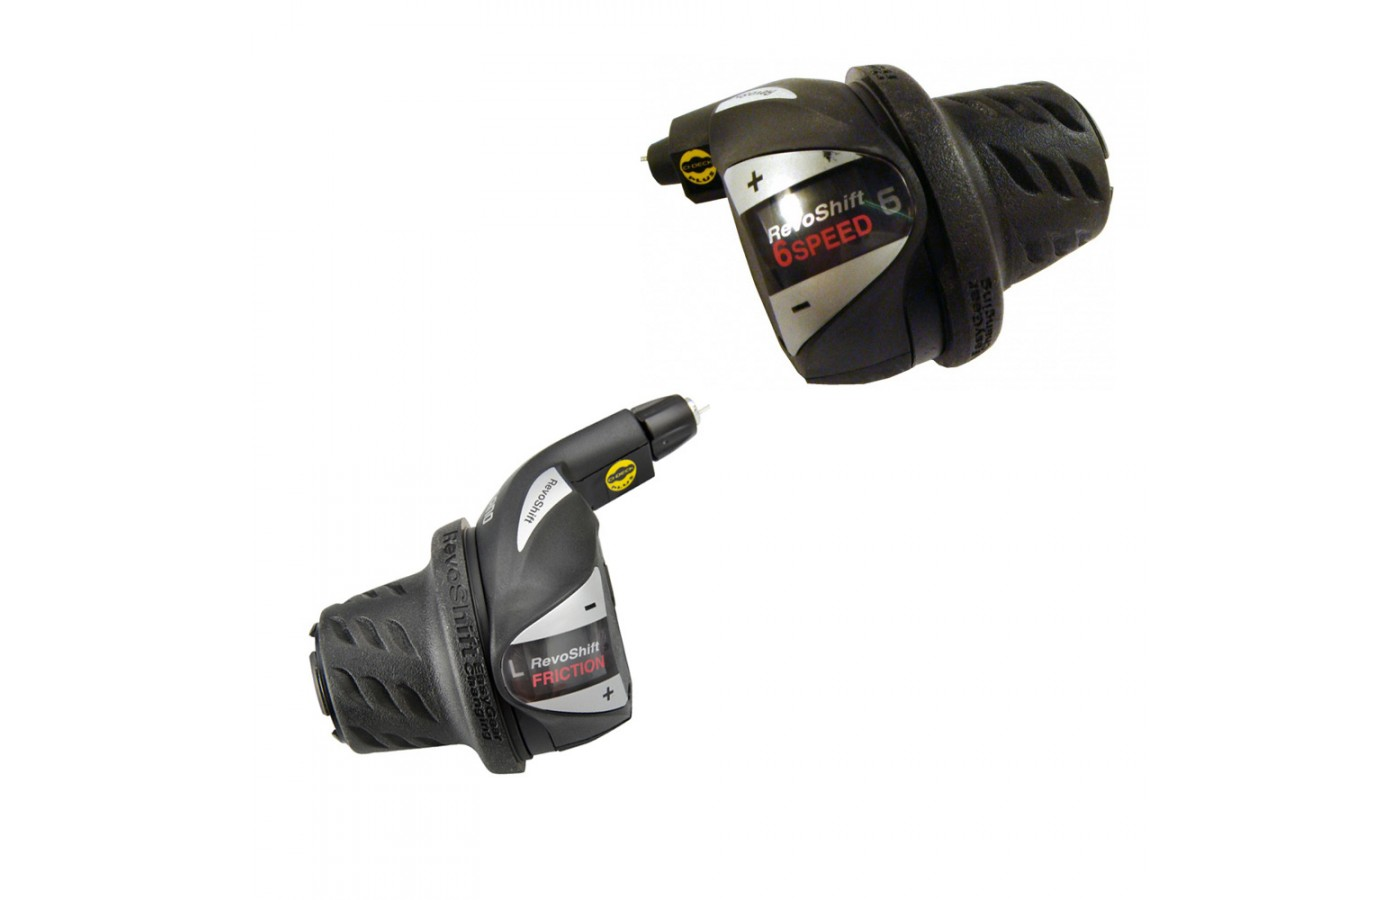 Шифтеры Shimano SL-RS36 Revo Shift Tourney 3/6 spd